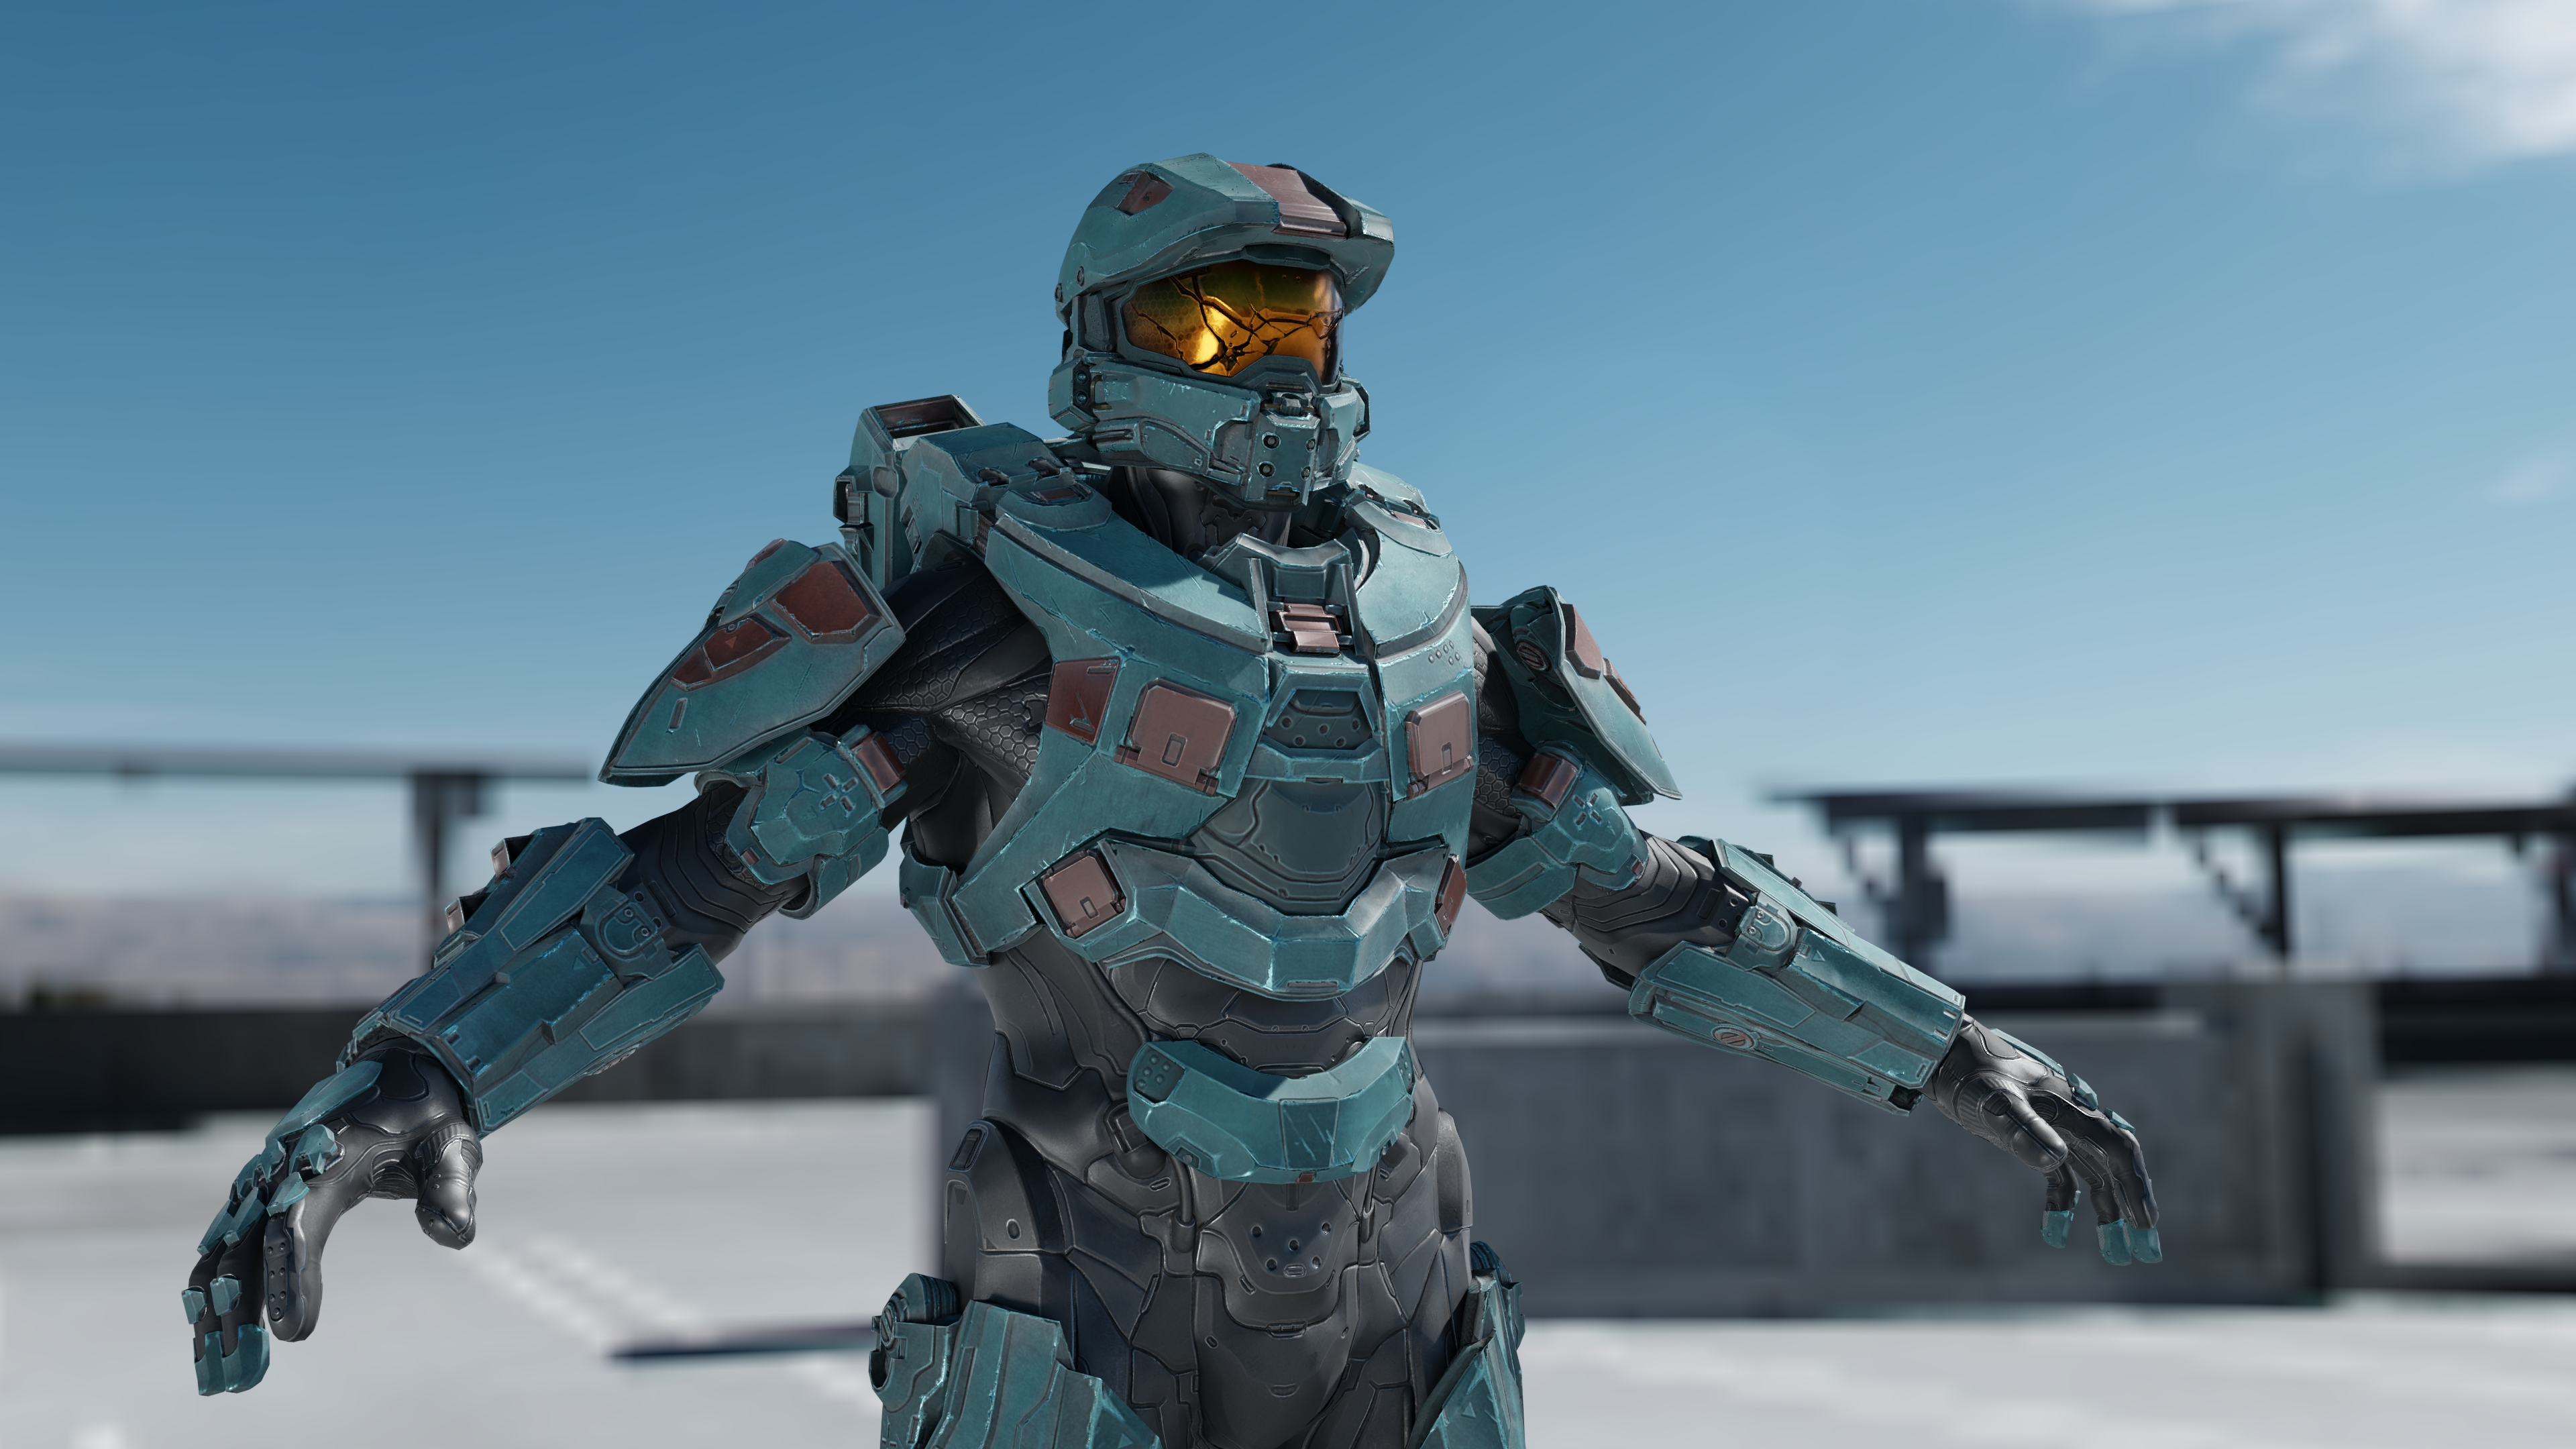 Halo 5 Multiplayer Chief Armour 3 By Masterj2001 On Deviantart